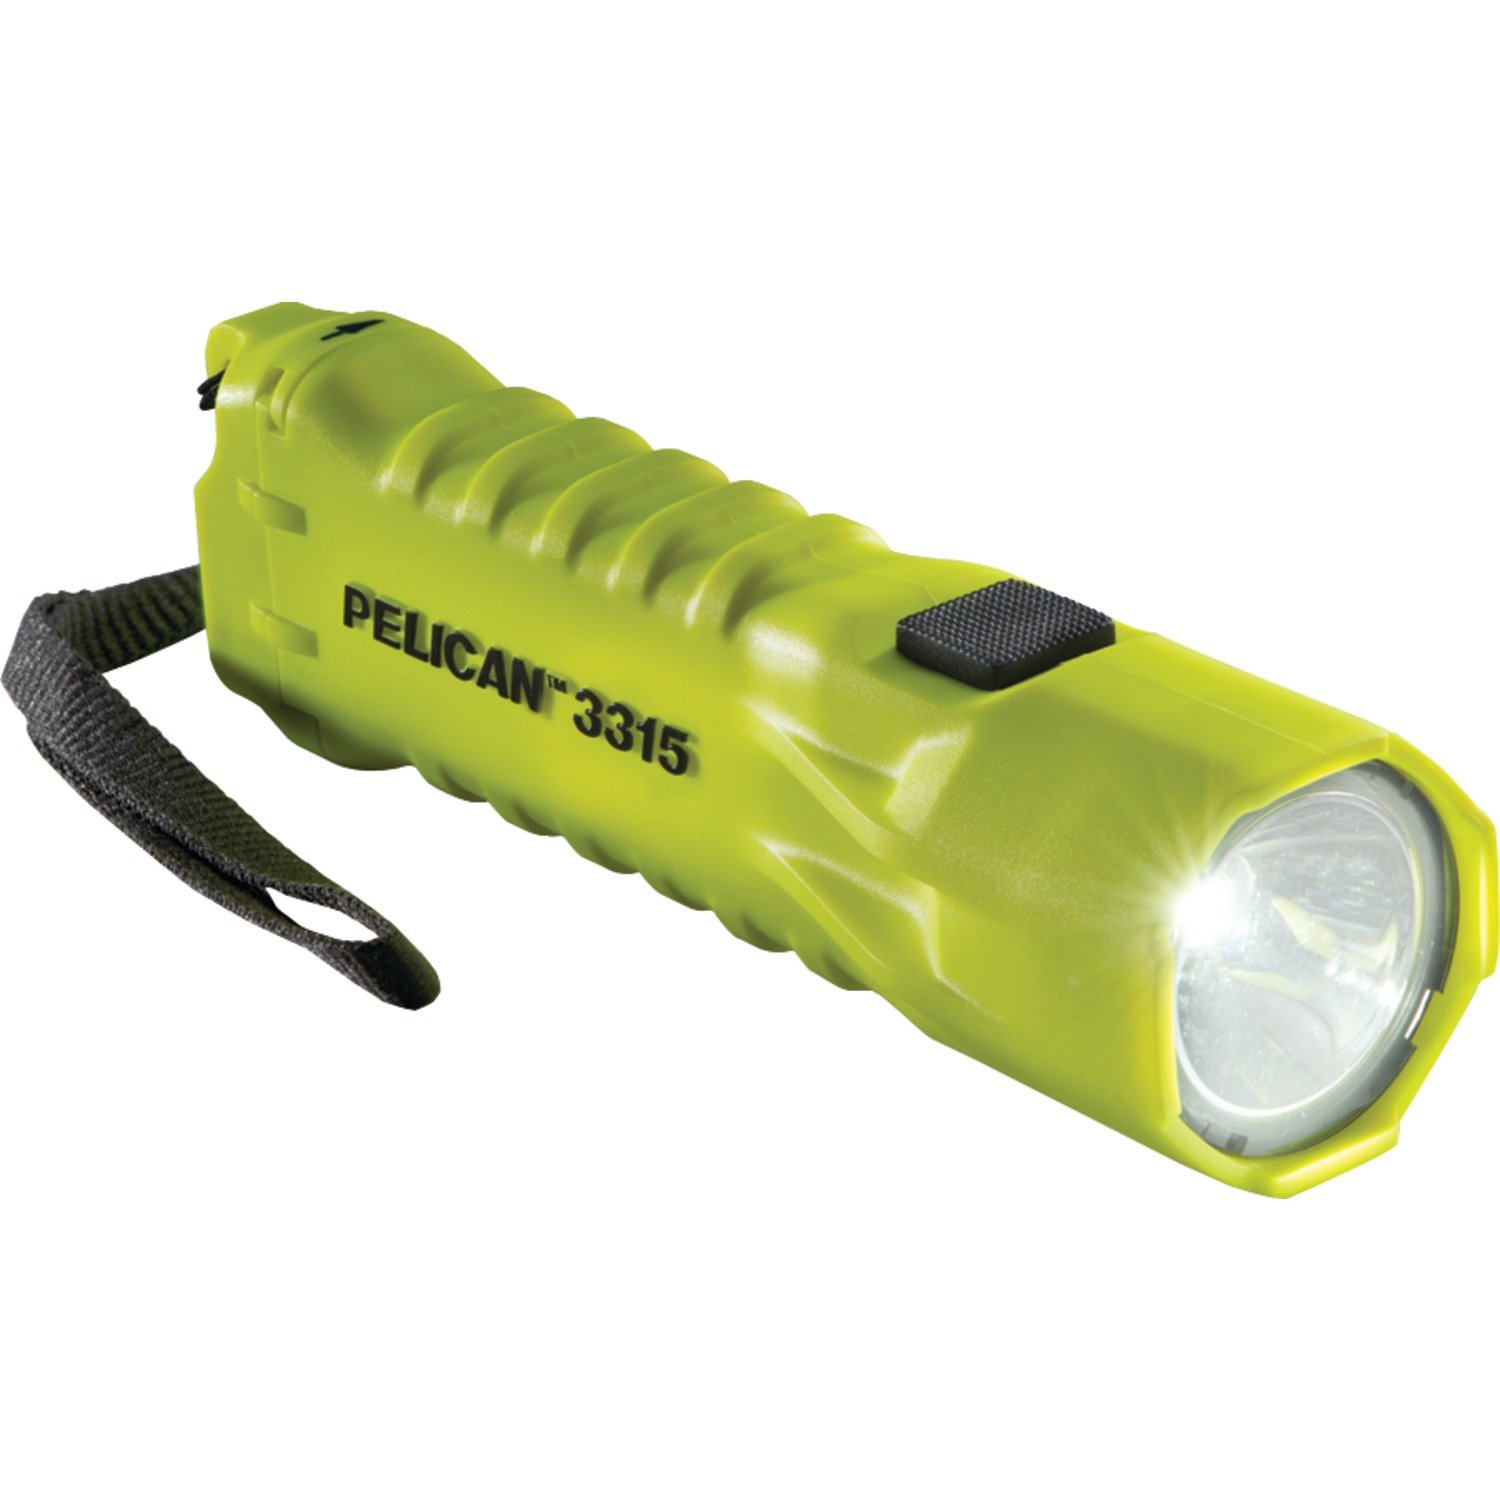 Pelican 033150-0100-245 Compact High Performance 113 Lumen LED Safety Approved Flashlight, Bright Yellow